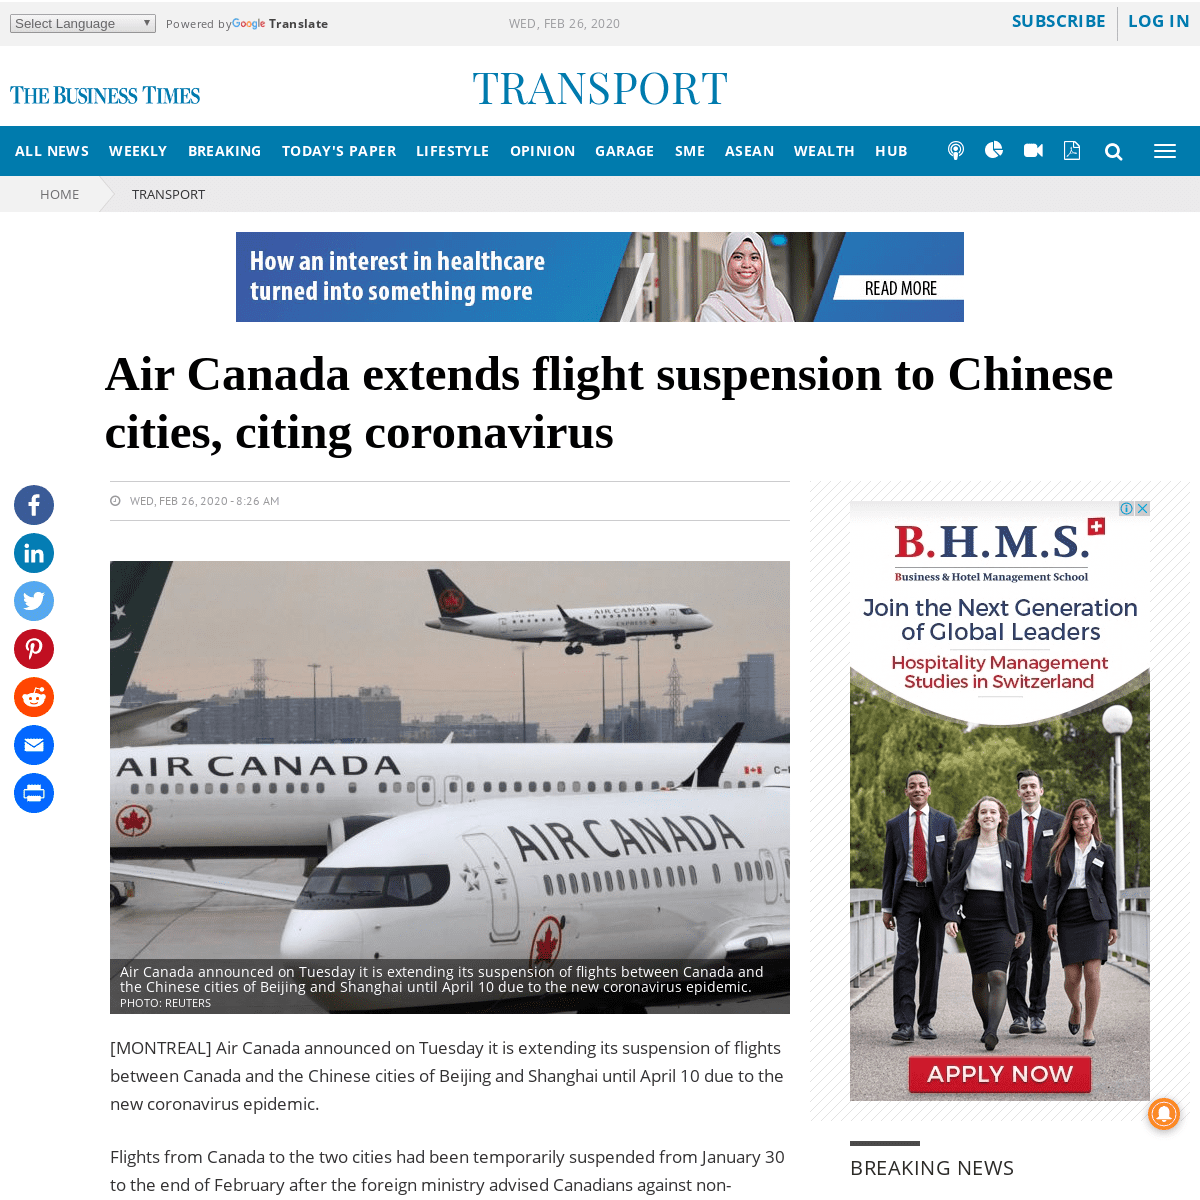 Air Canada extends flight suspension to Chinese cities, citing coronavirus, Transport - THE BUSINESS TIMES